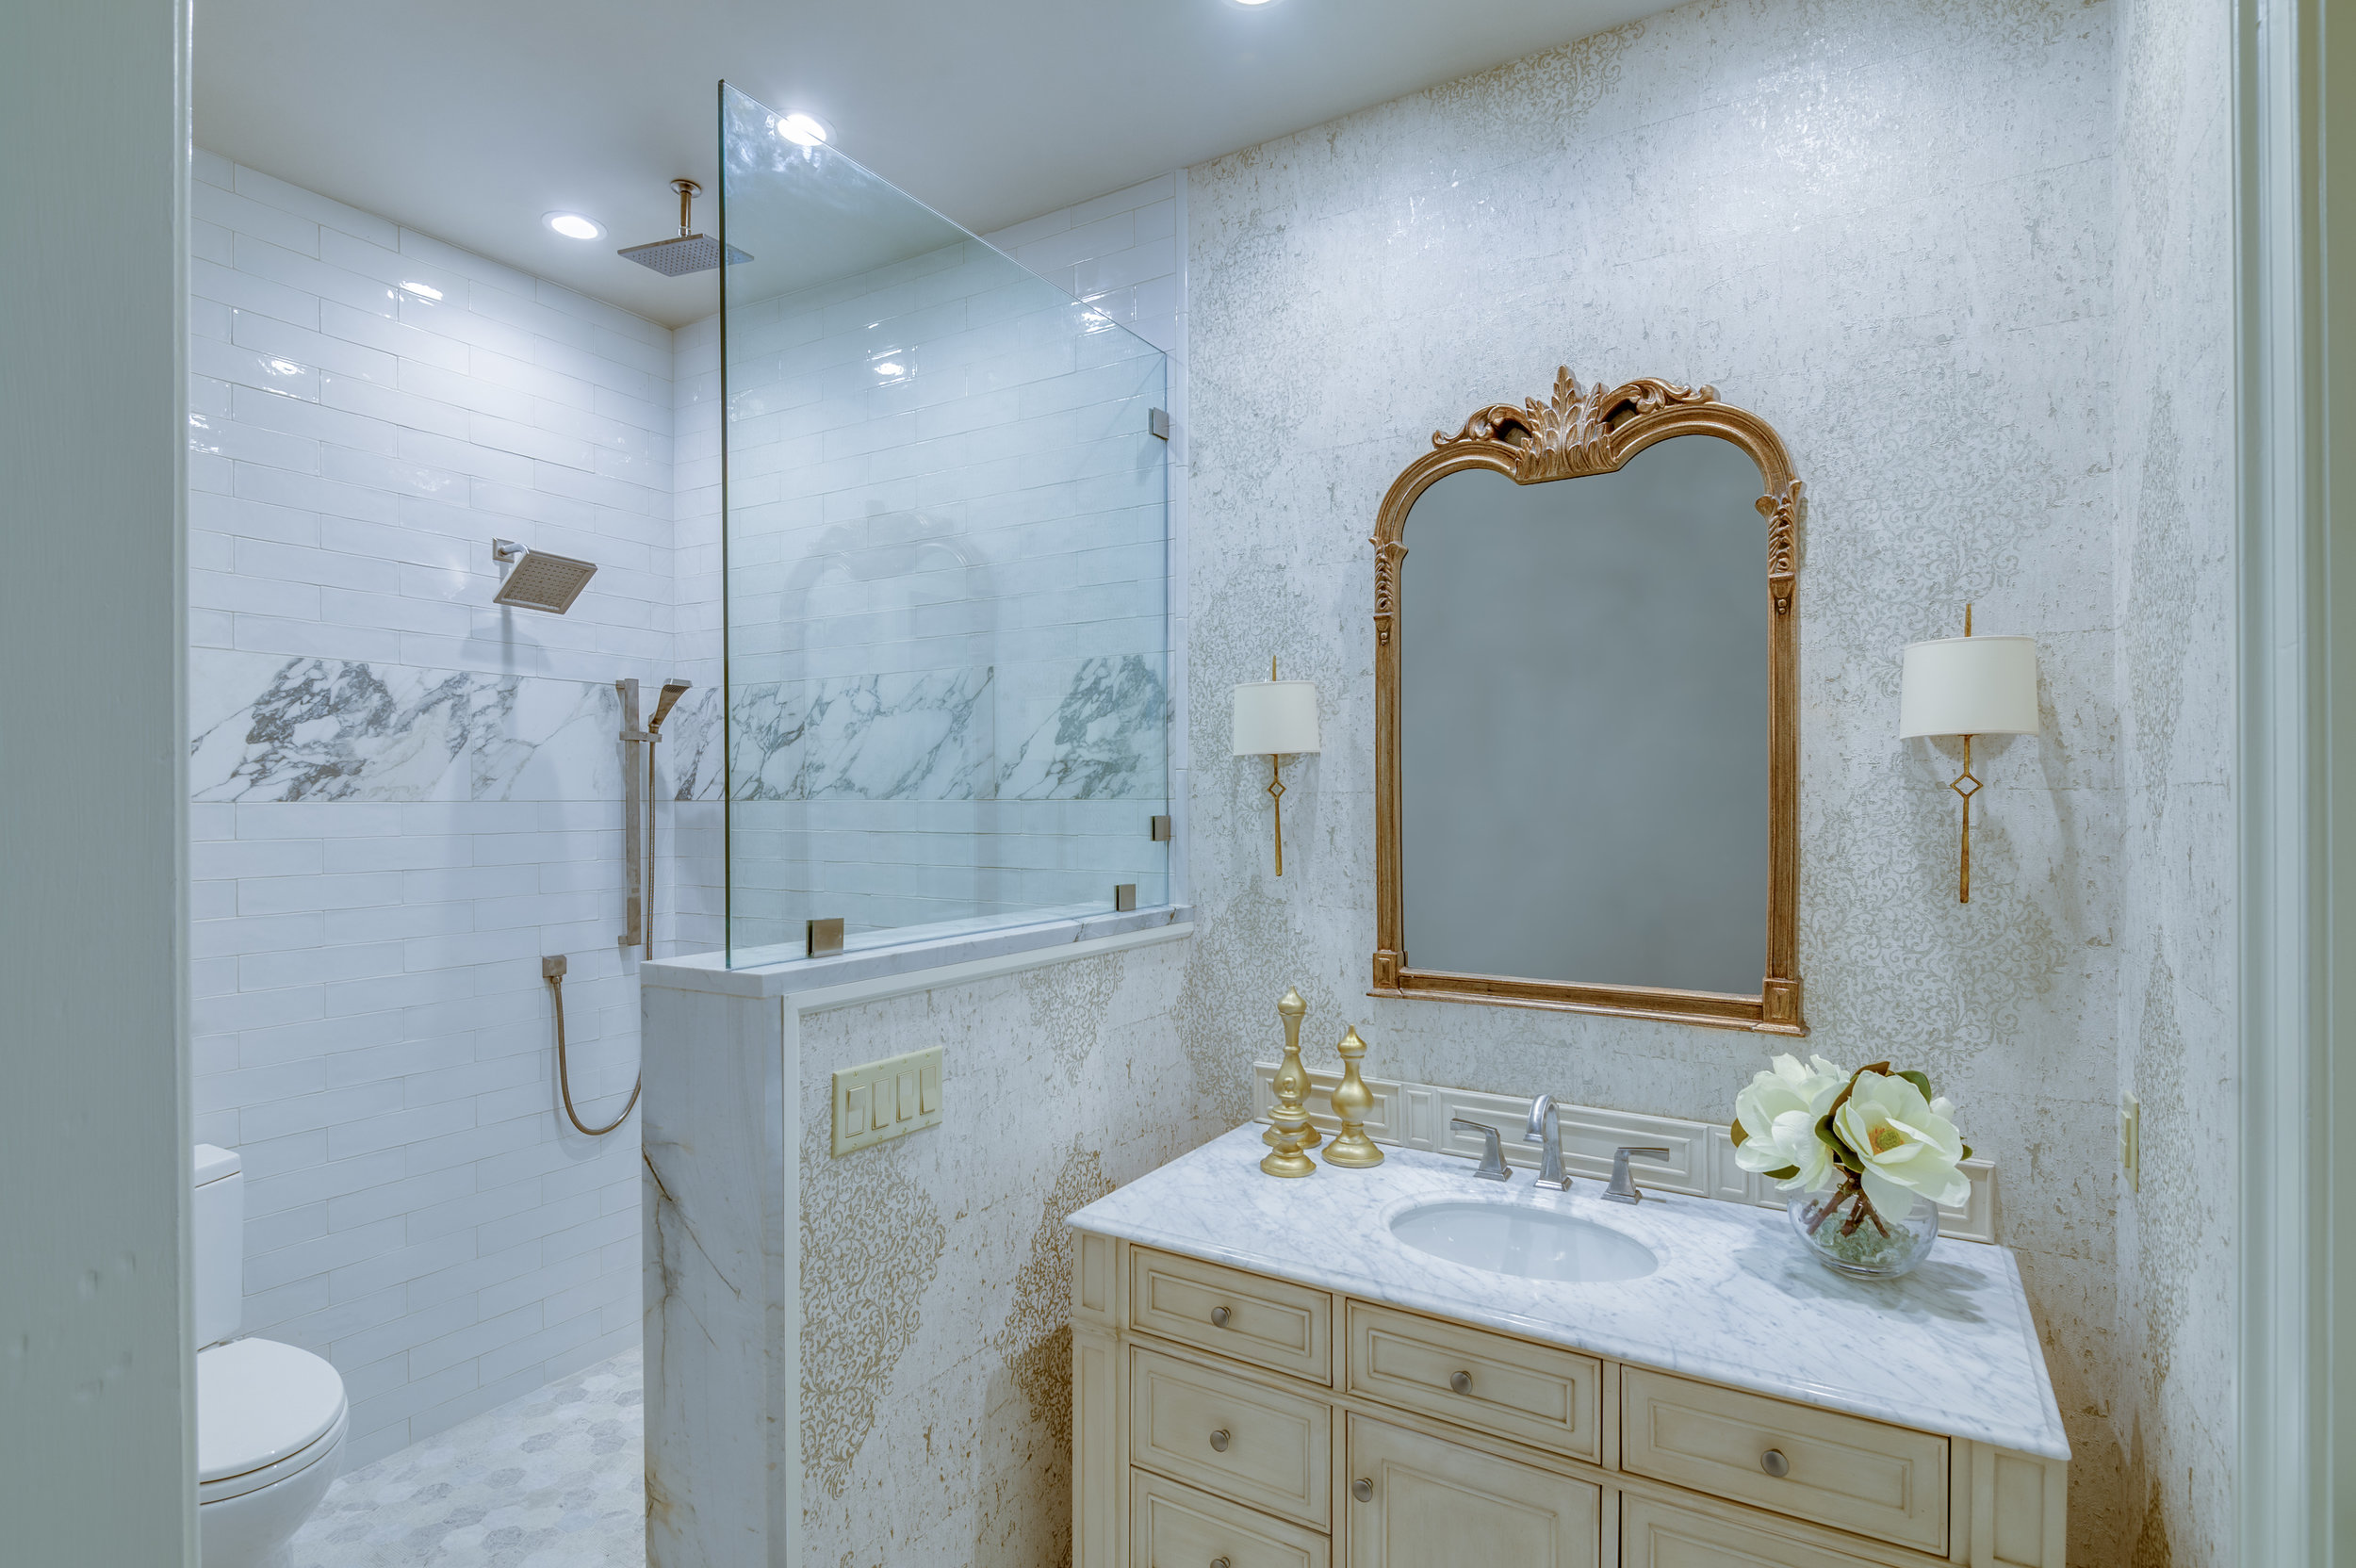 KHB Interiors NEW ORLEANS uptown lakeview interior designer old metairie master bathroom vanity mel .jpg